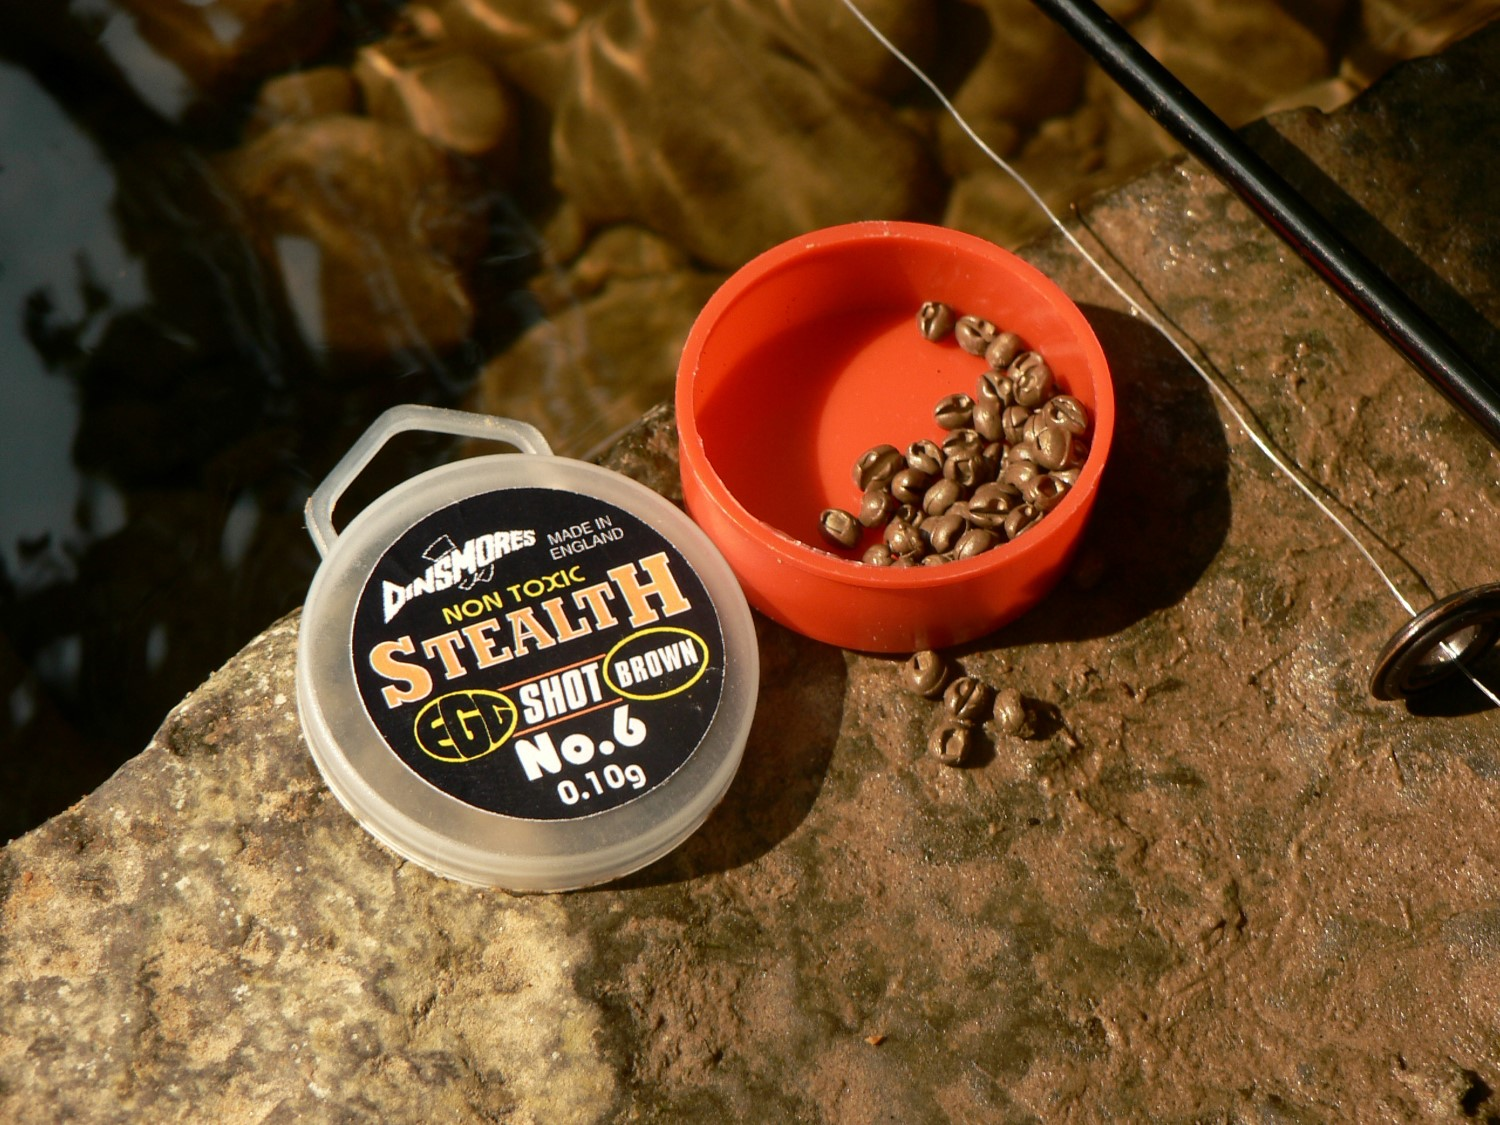 DINSMORES-STEALTH-BROWN-REFILL-AB